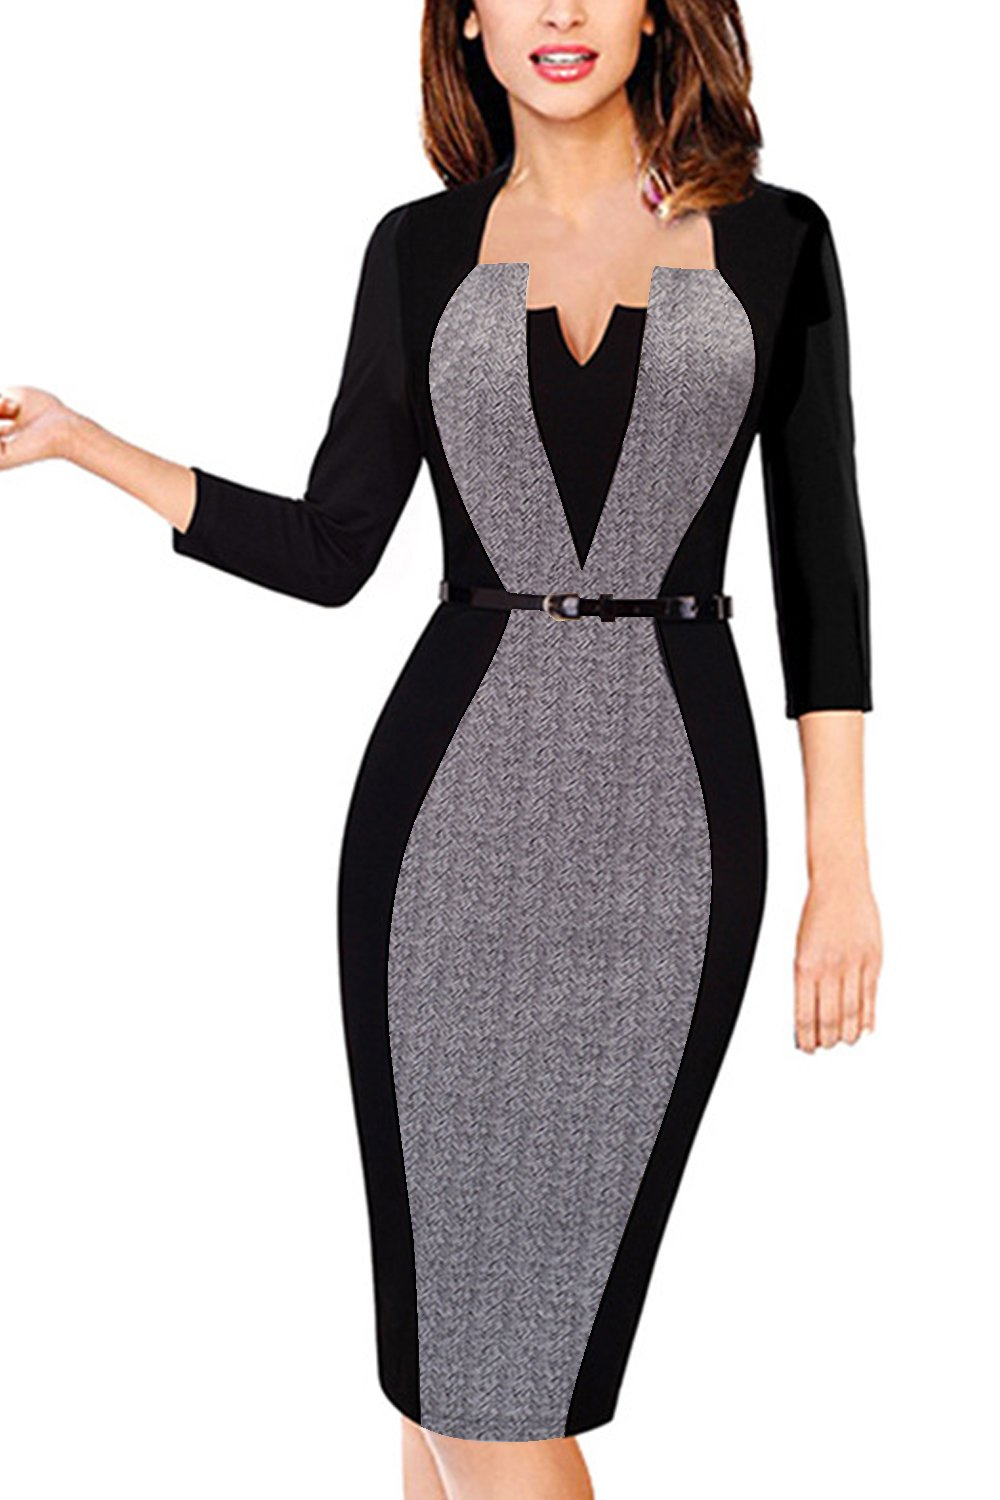 Retro Chic Bodycon Work Dresses Plus Size Belt Women Grey,4XL